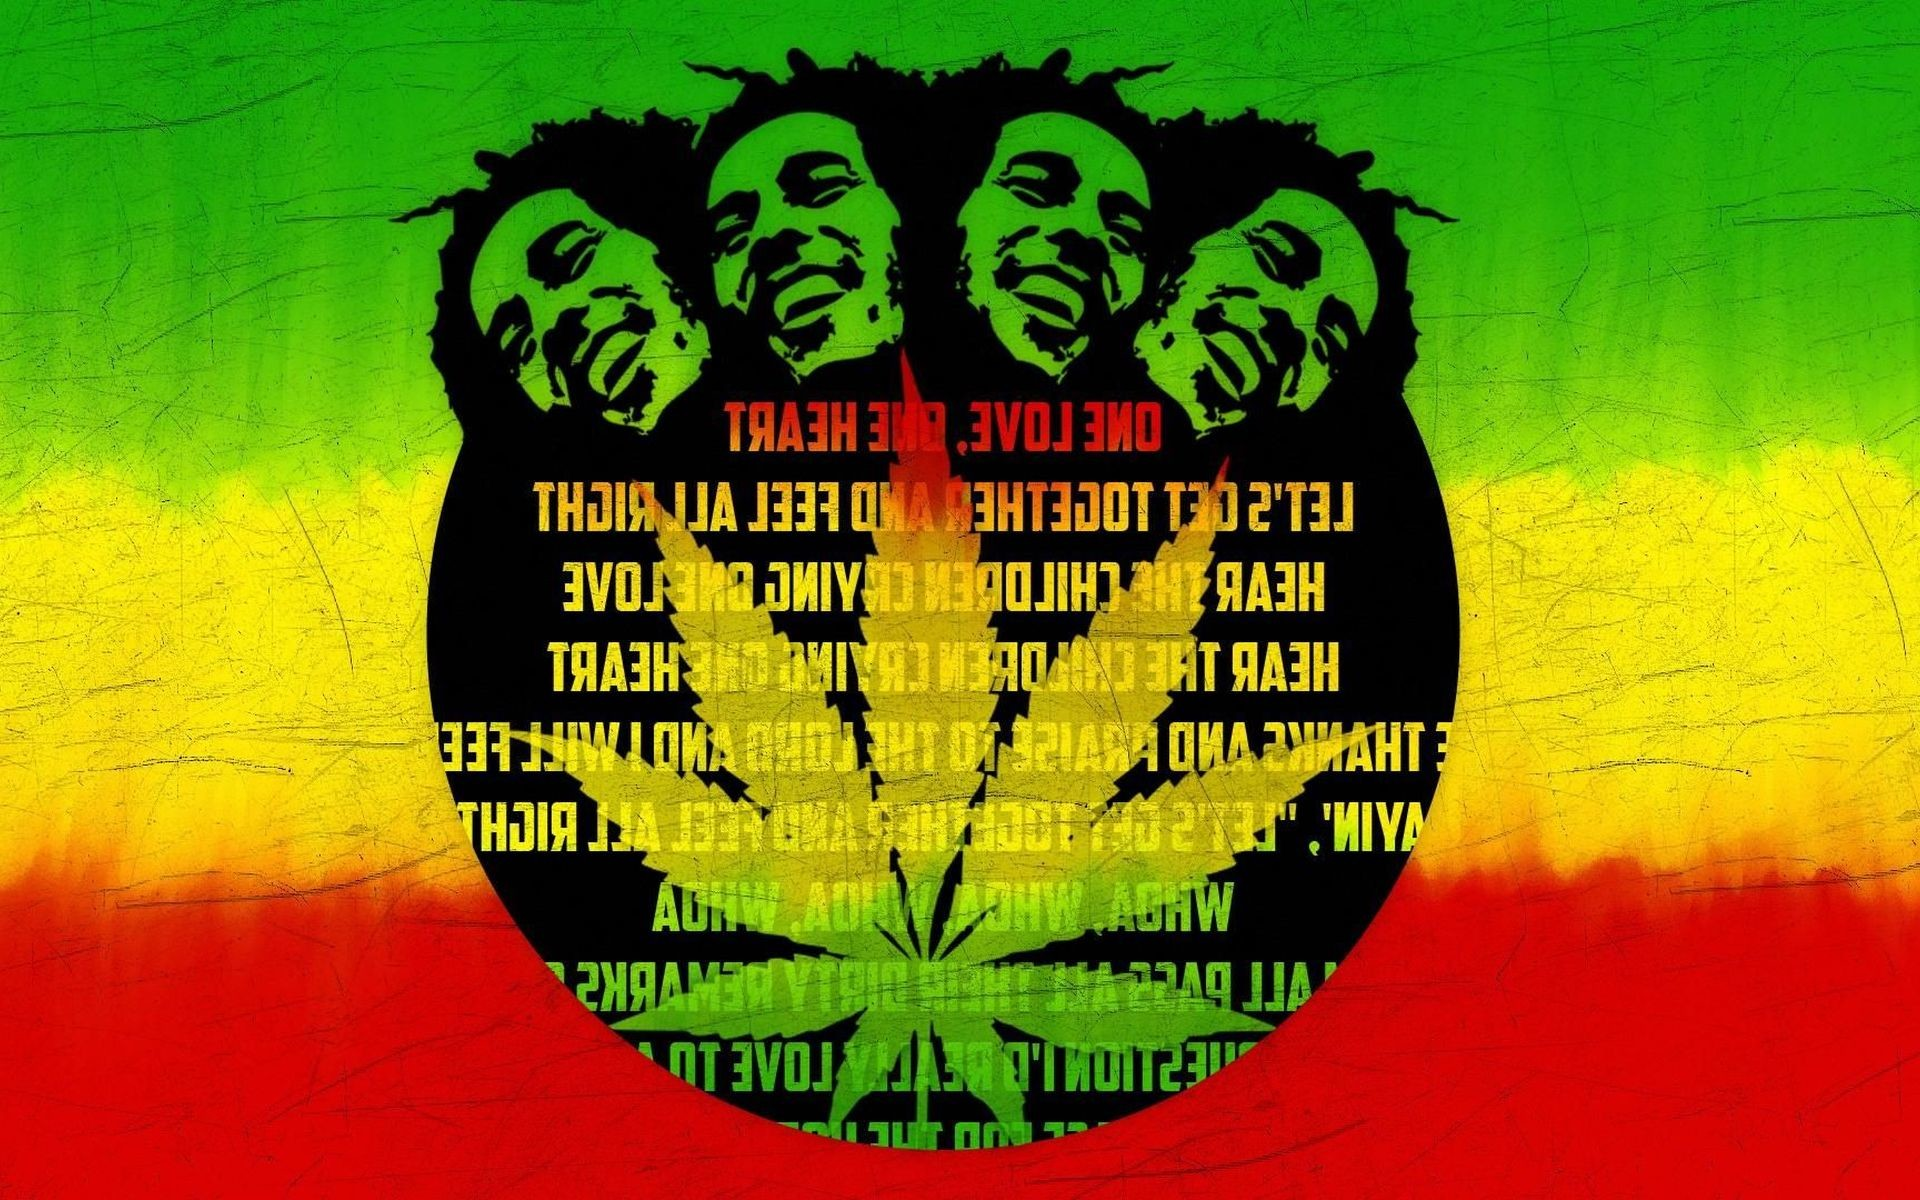 Hd Wallpapers Smoke Weed Reggae Backgrounds 51 Images